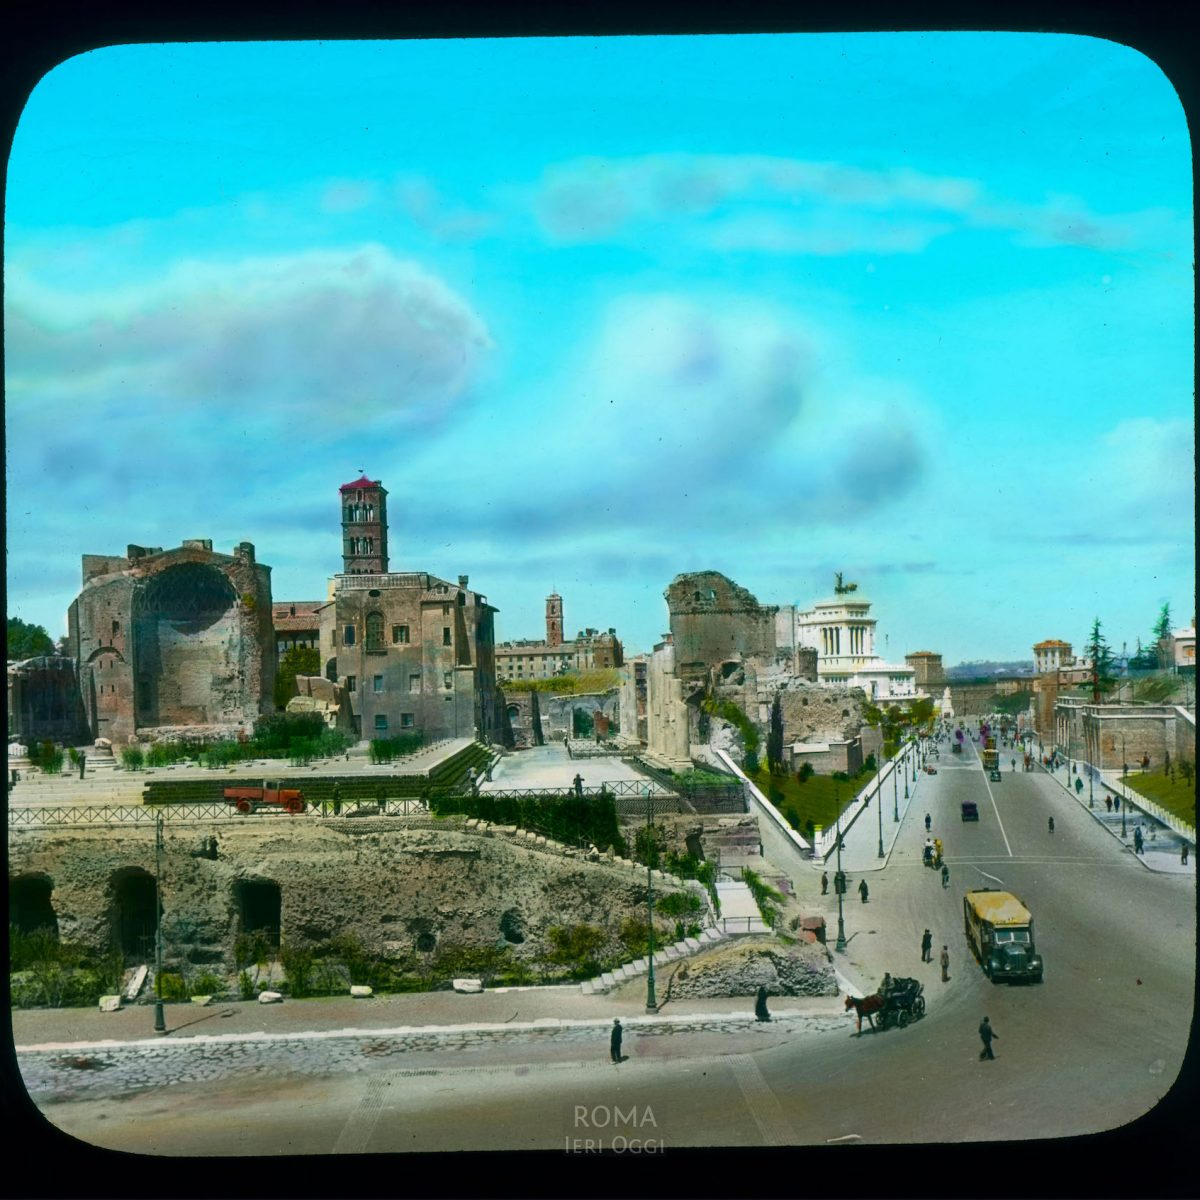 Rome. Temple of Venus and Roma: view from Colosseum, with the Via dei Fori Imperiali View in tinted lantern slide, ca. 1919-1938. The temple dates from 121-141 C.E., with later restorations